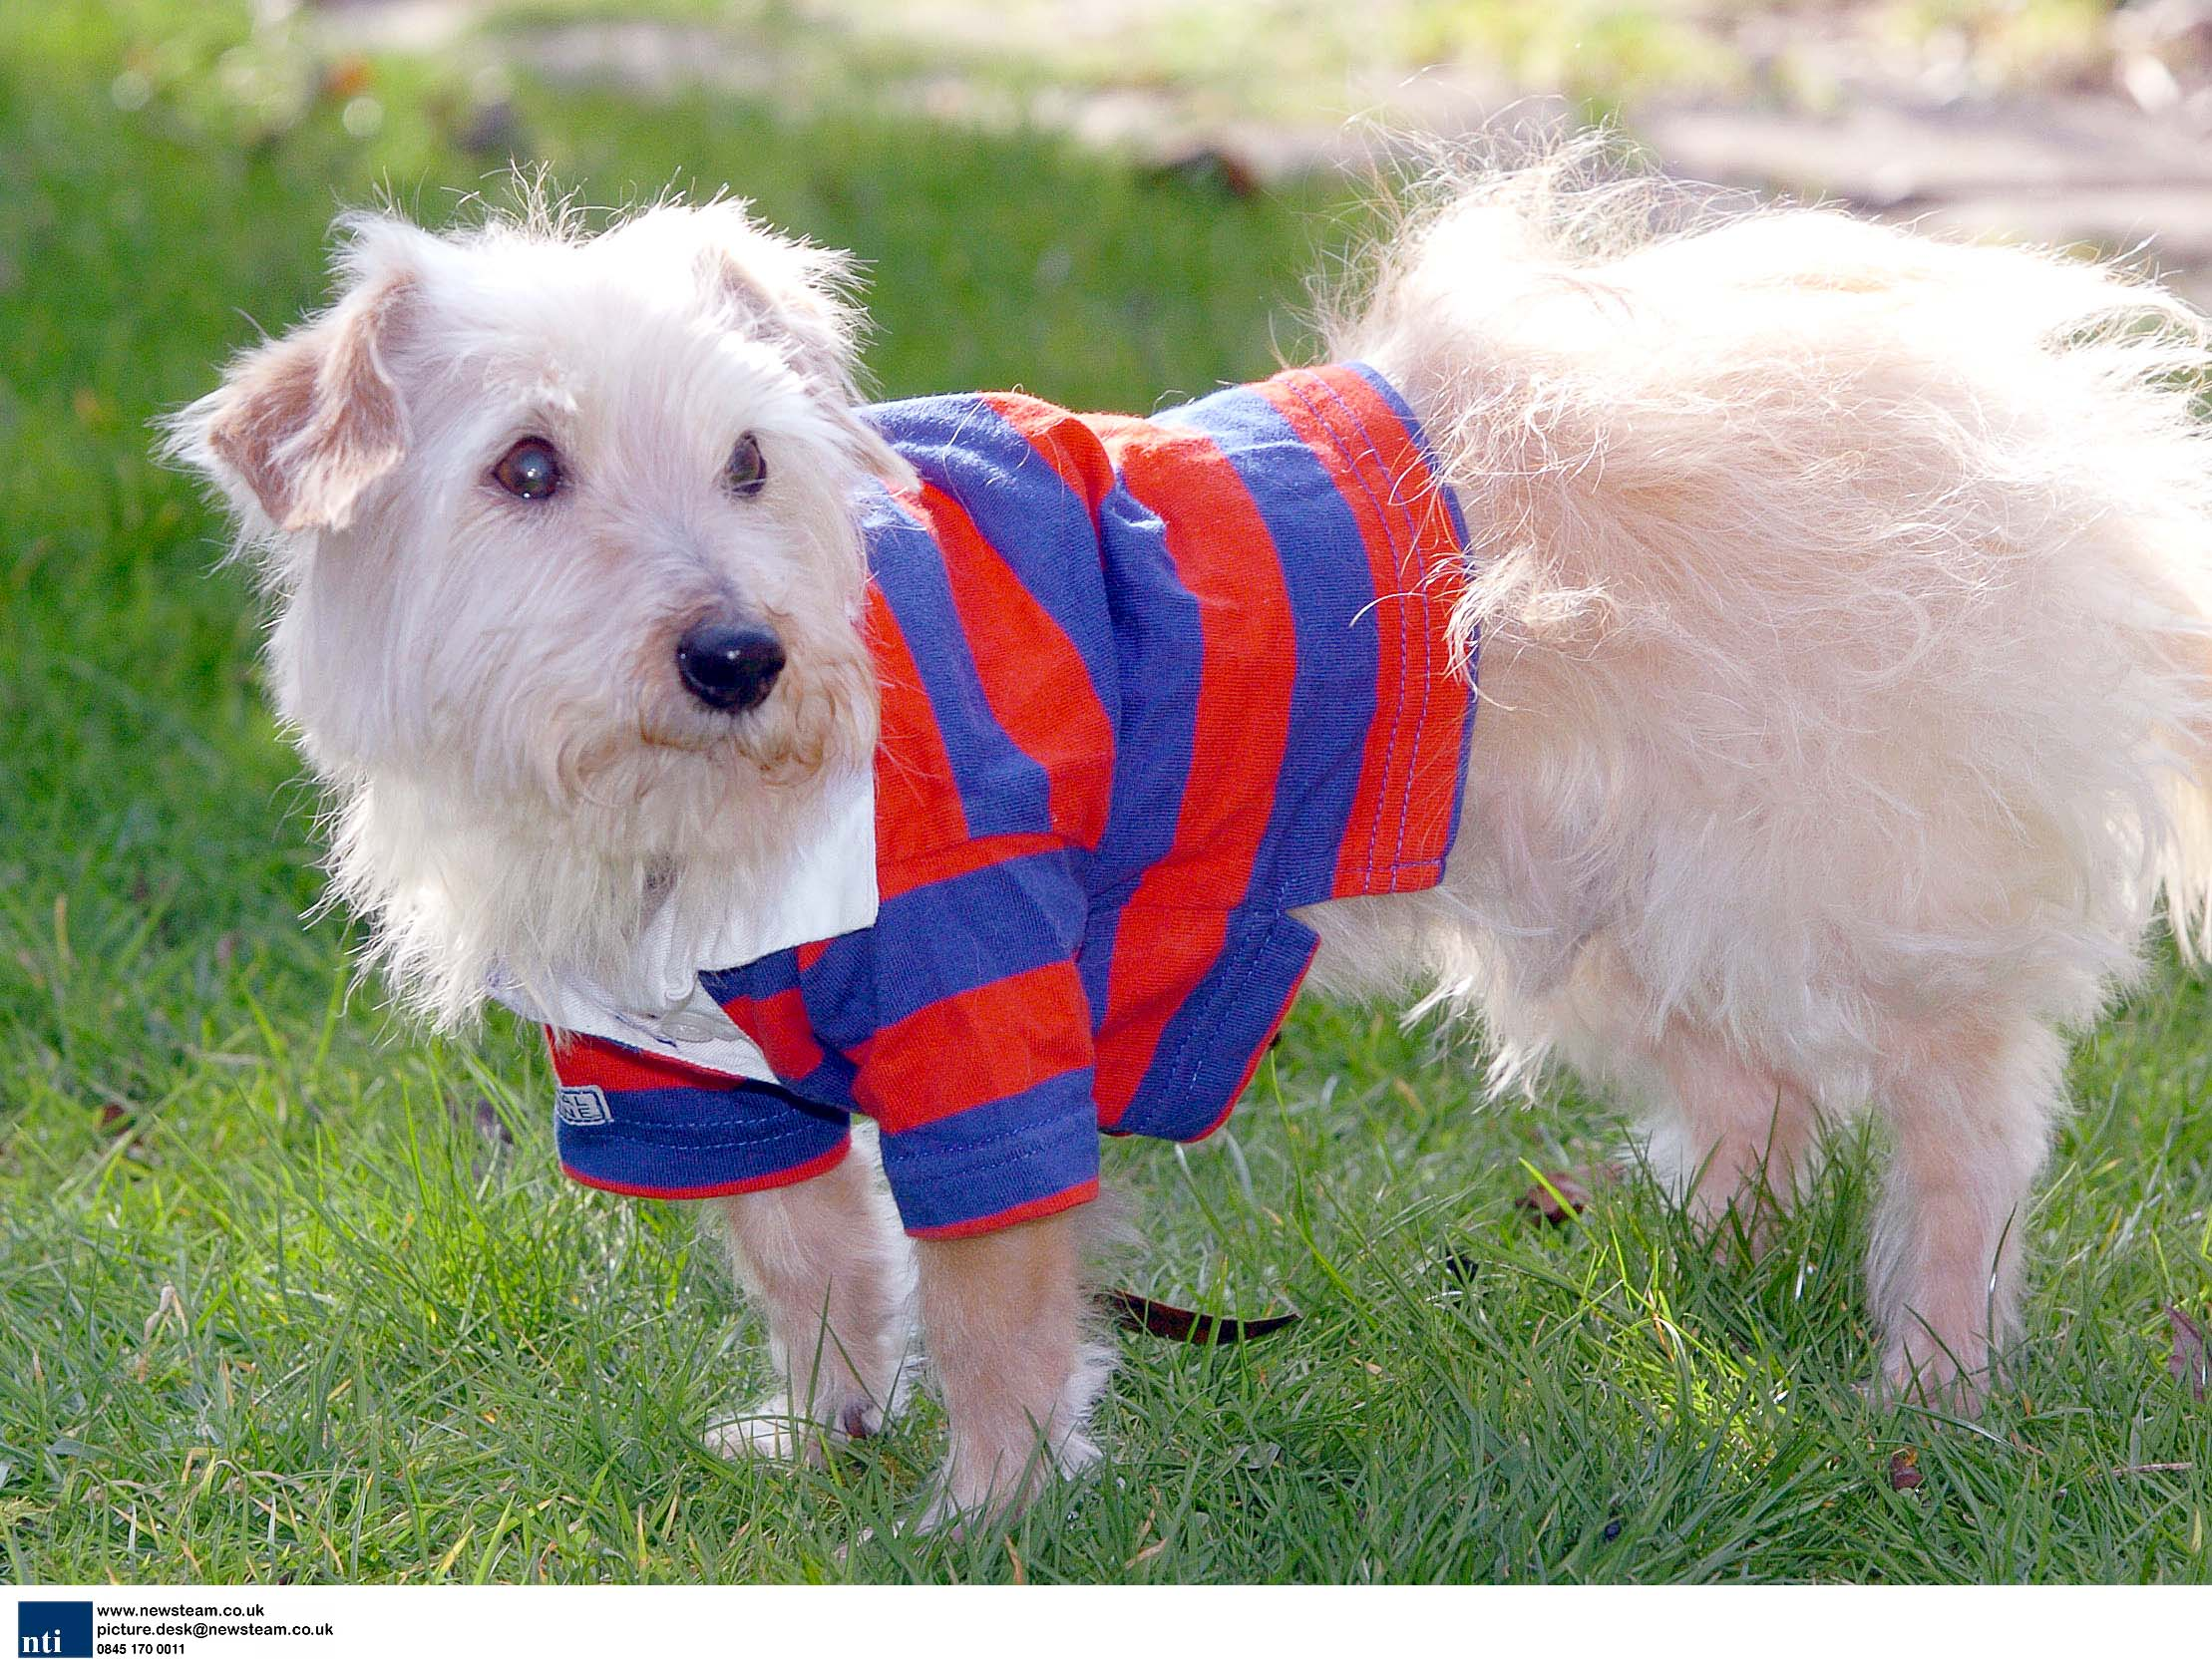 Bertie the Dog, in his rugby shirt.